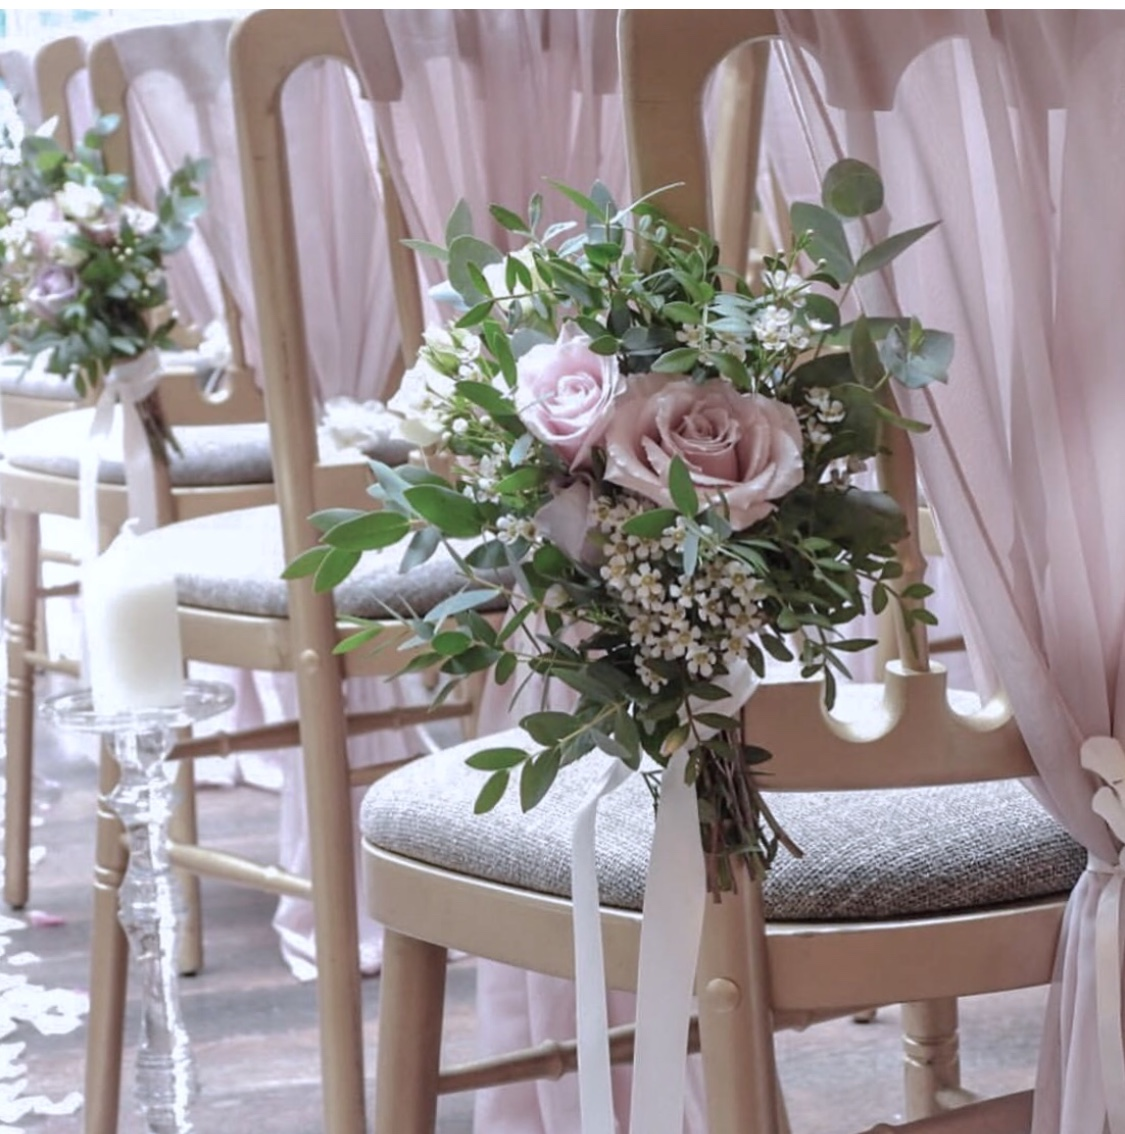 Wedding floral chair decor